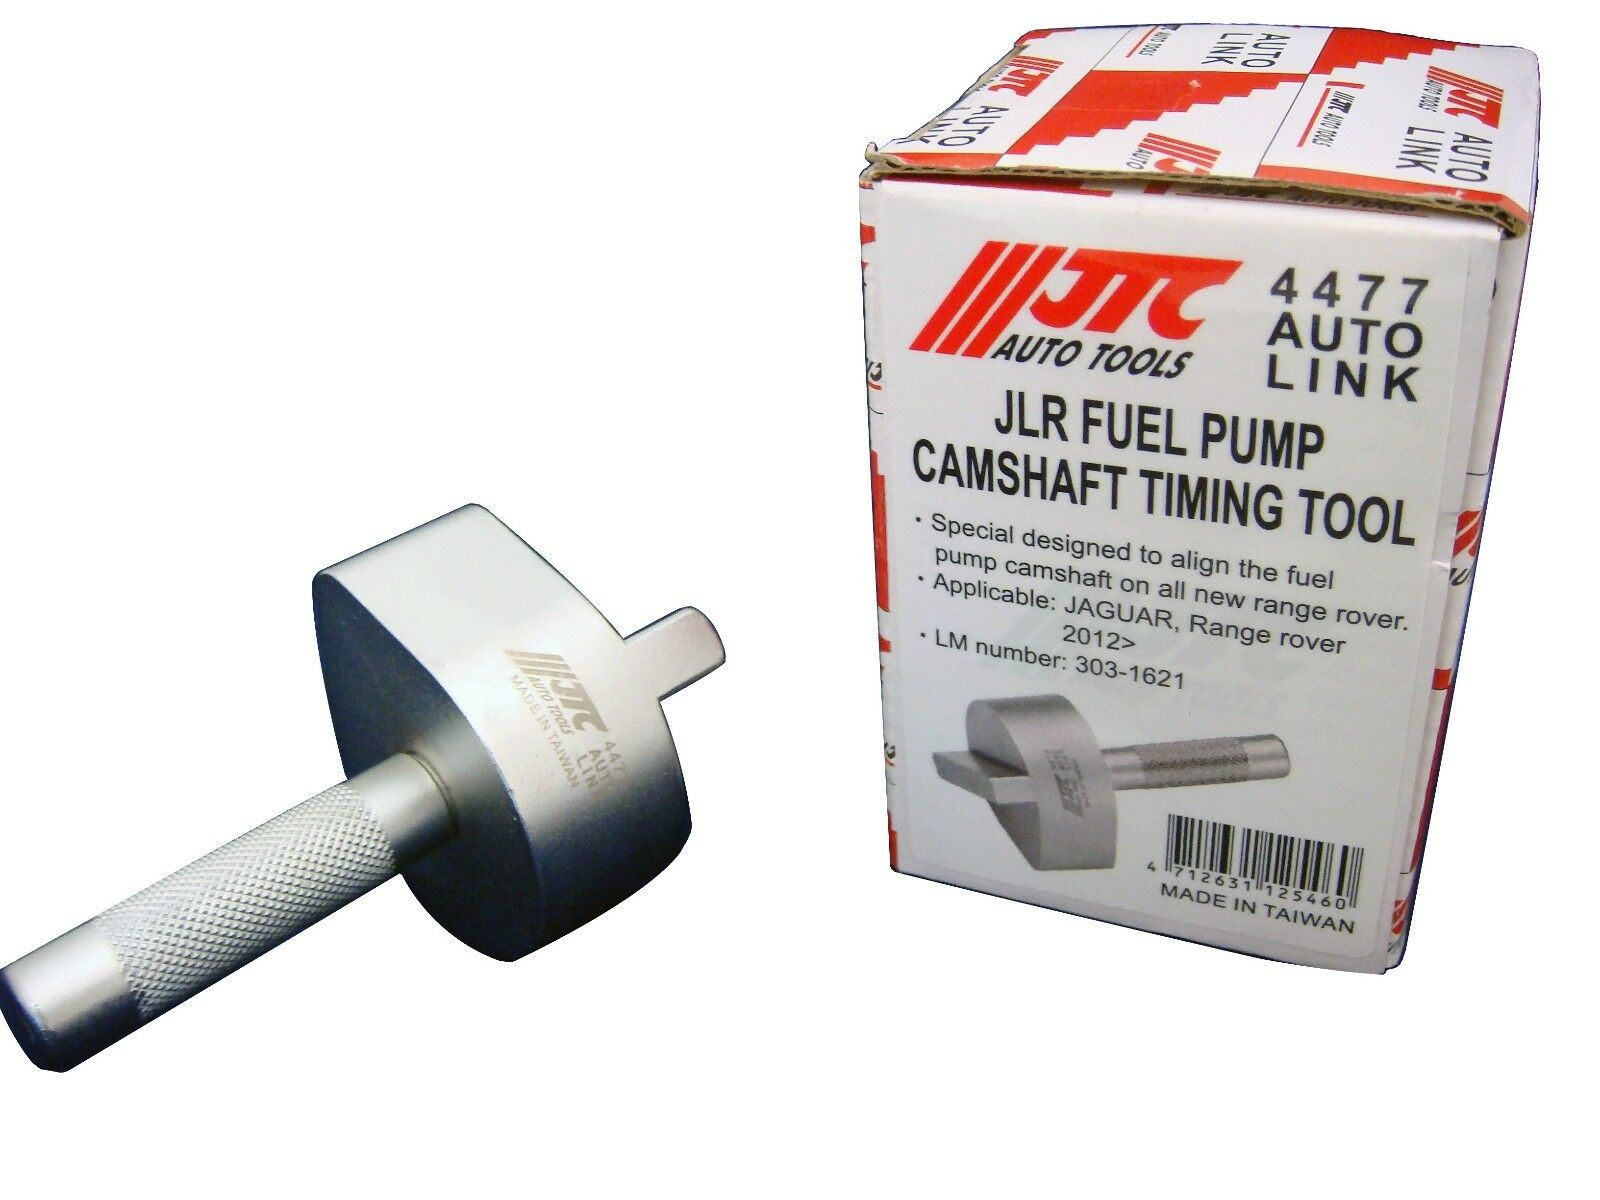 iFJF Cam Phaser Locking Tool and Timing Chain Locking Wedge Tool Cam Tool Complete Set for Ford 4.6L//5.4L//6.8L 3V Engine,Lincoln Mercury 2005-2014 5.4L/&4.6L 3V Engines,Navigator,Ford Mustang F-150